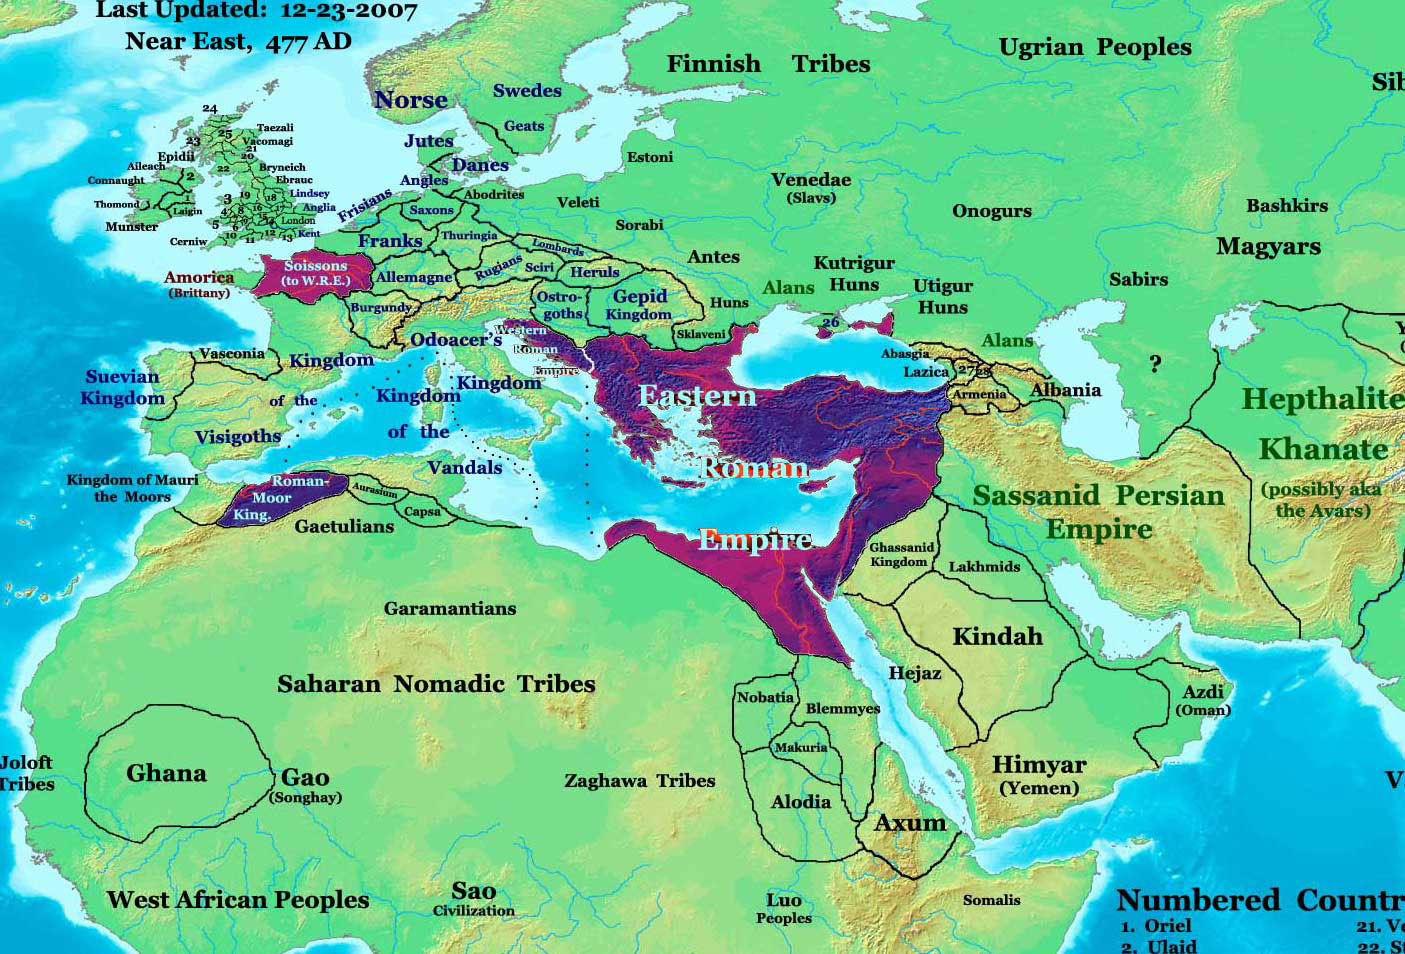 fall of western roman empire The roman empire was a large political territory that helped shape modern-day western civilization it was under control of the government of the city of rome (and for a brief time, the city of constantinople) for around 500 years this empire stretched throughout the mediterranean areas of europe.